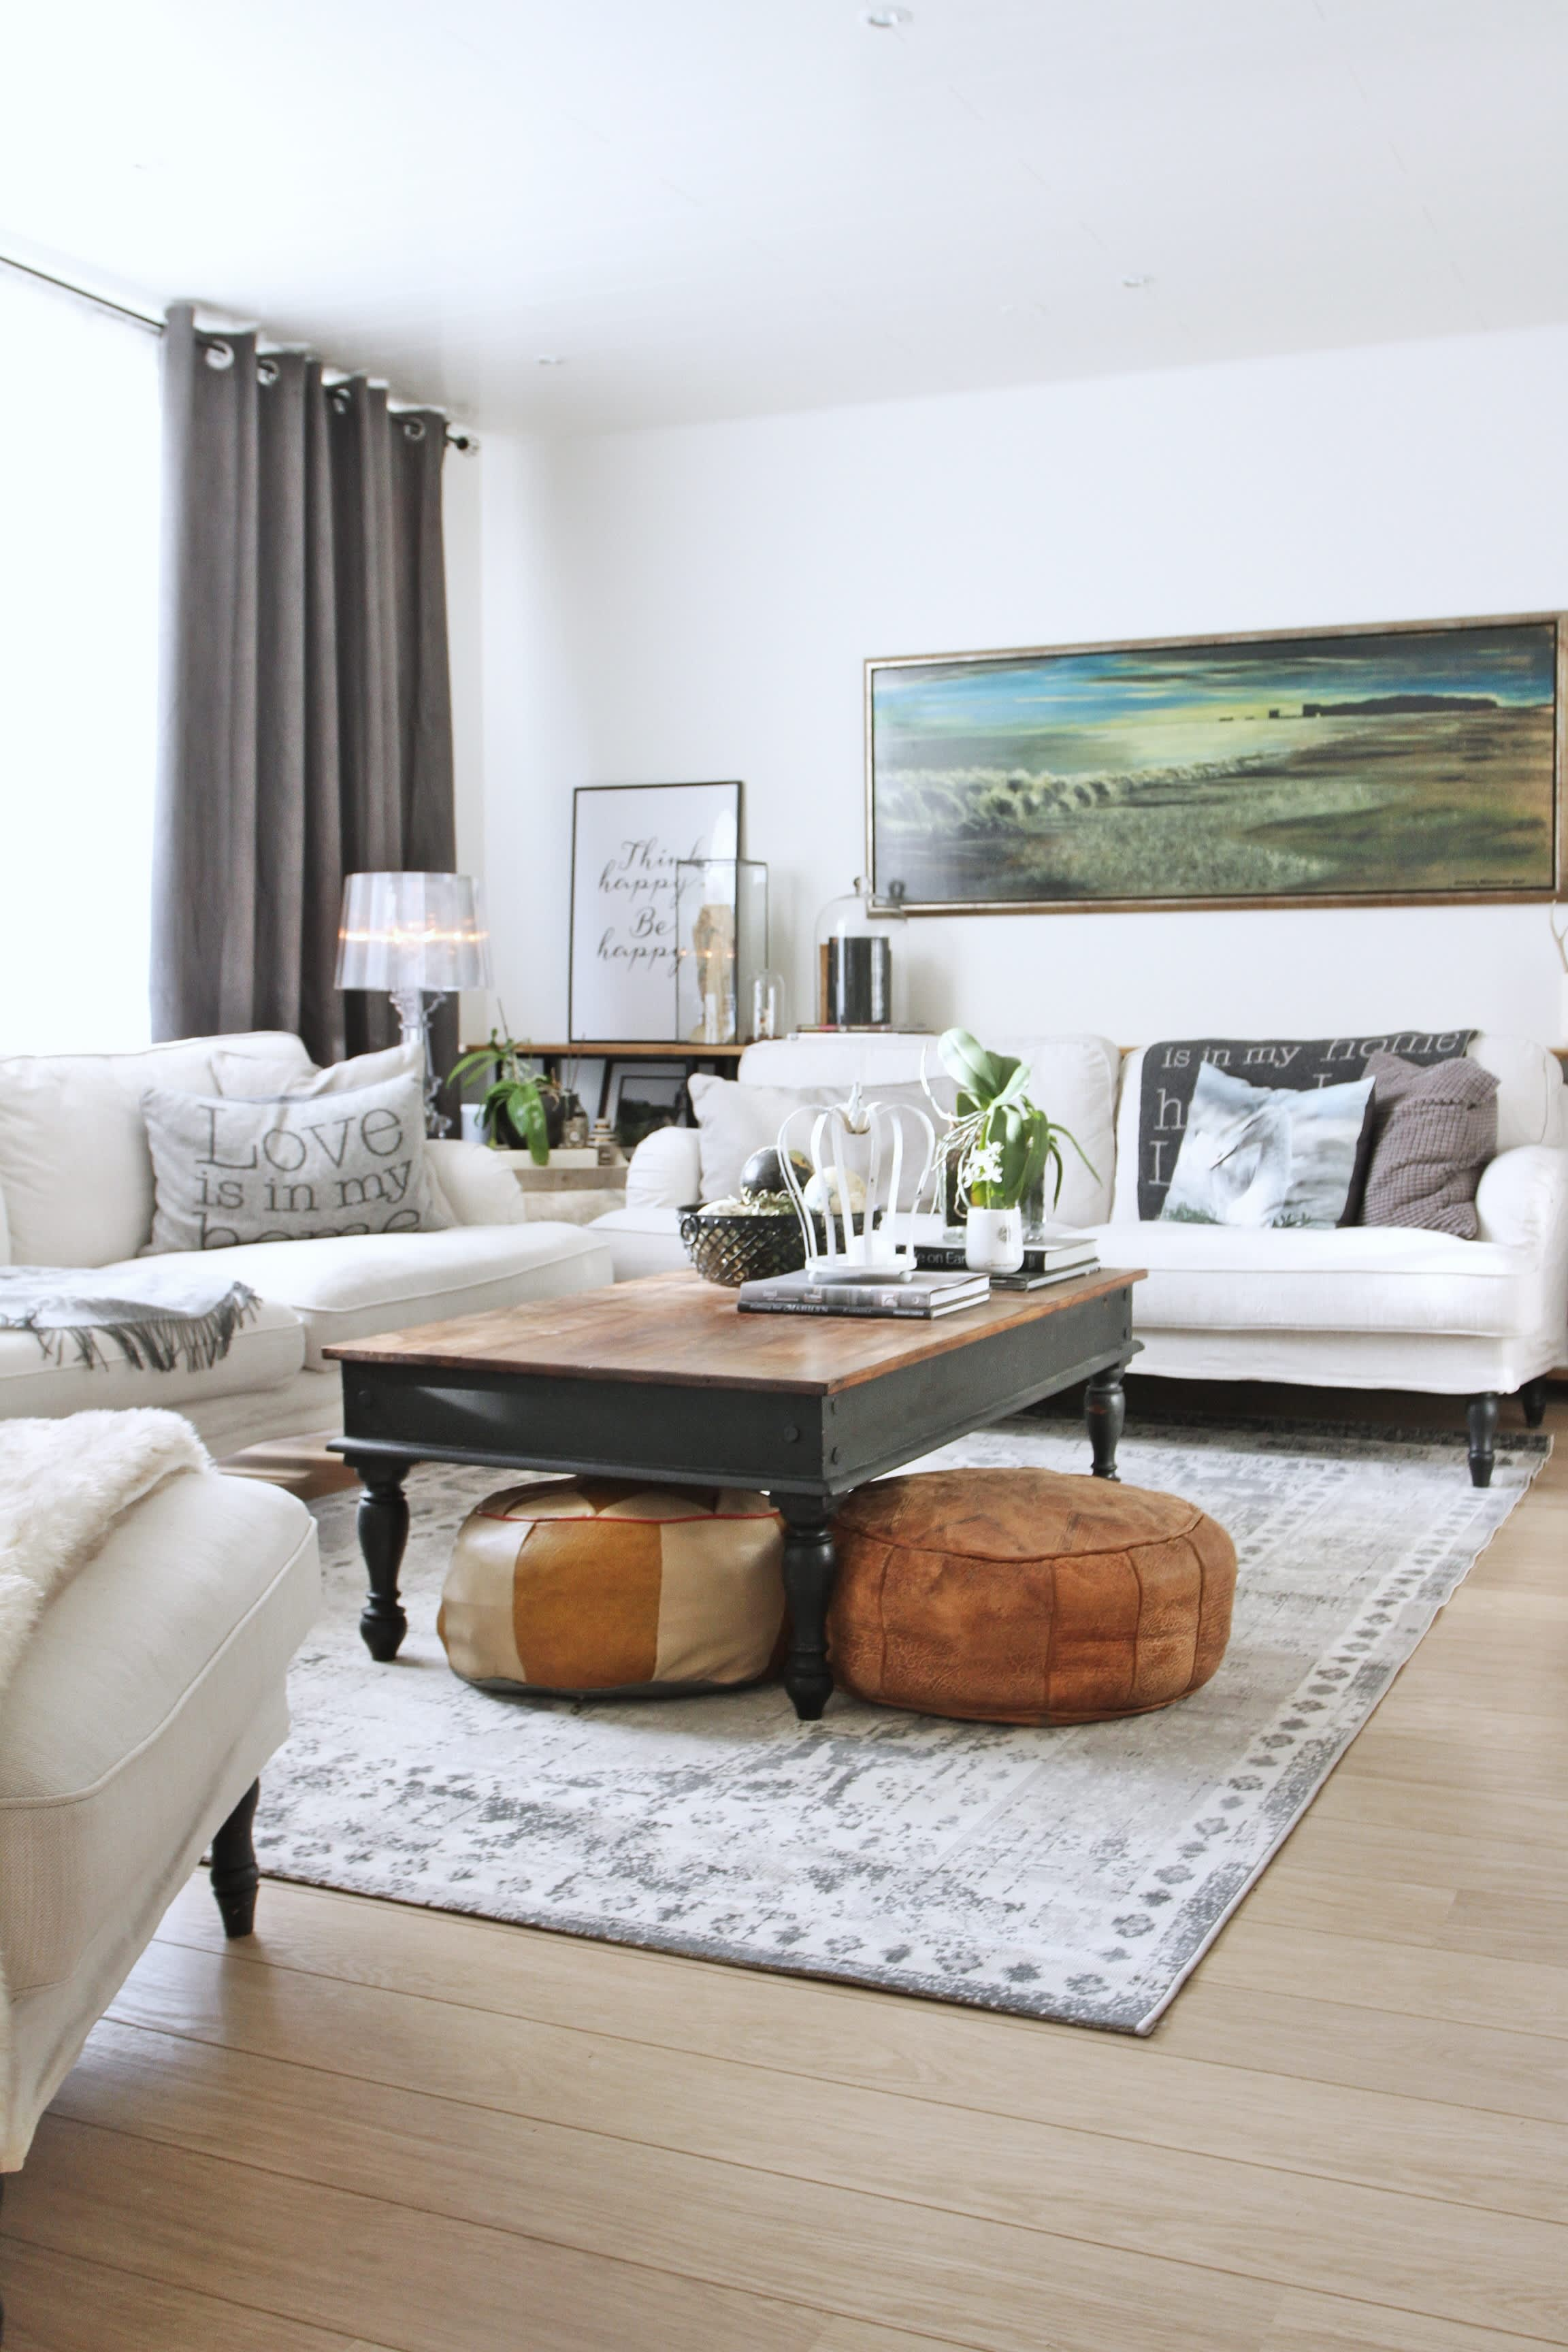 House Tour Industrial Farmhouse Style Home In Iceland Apartment